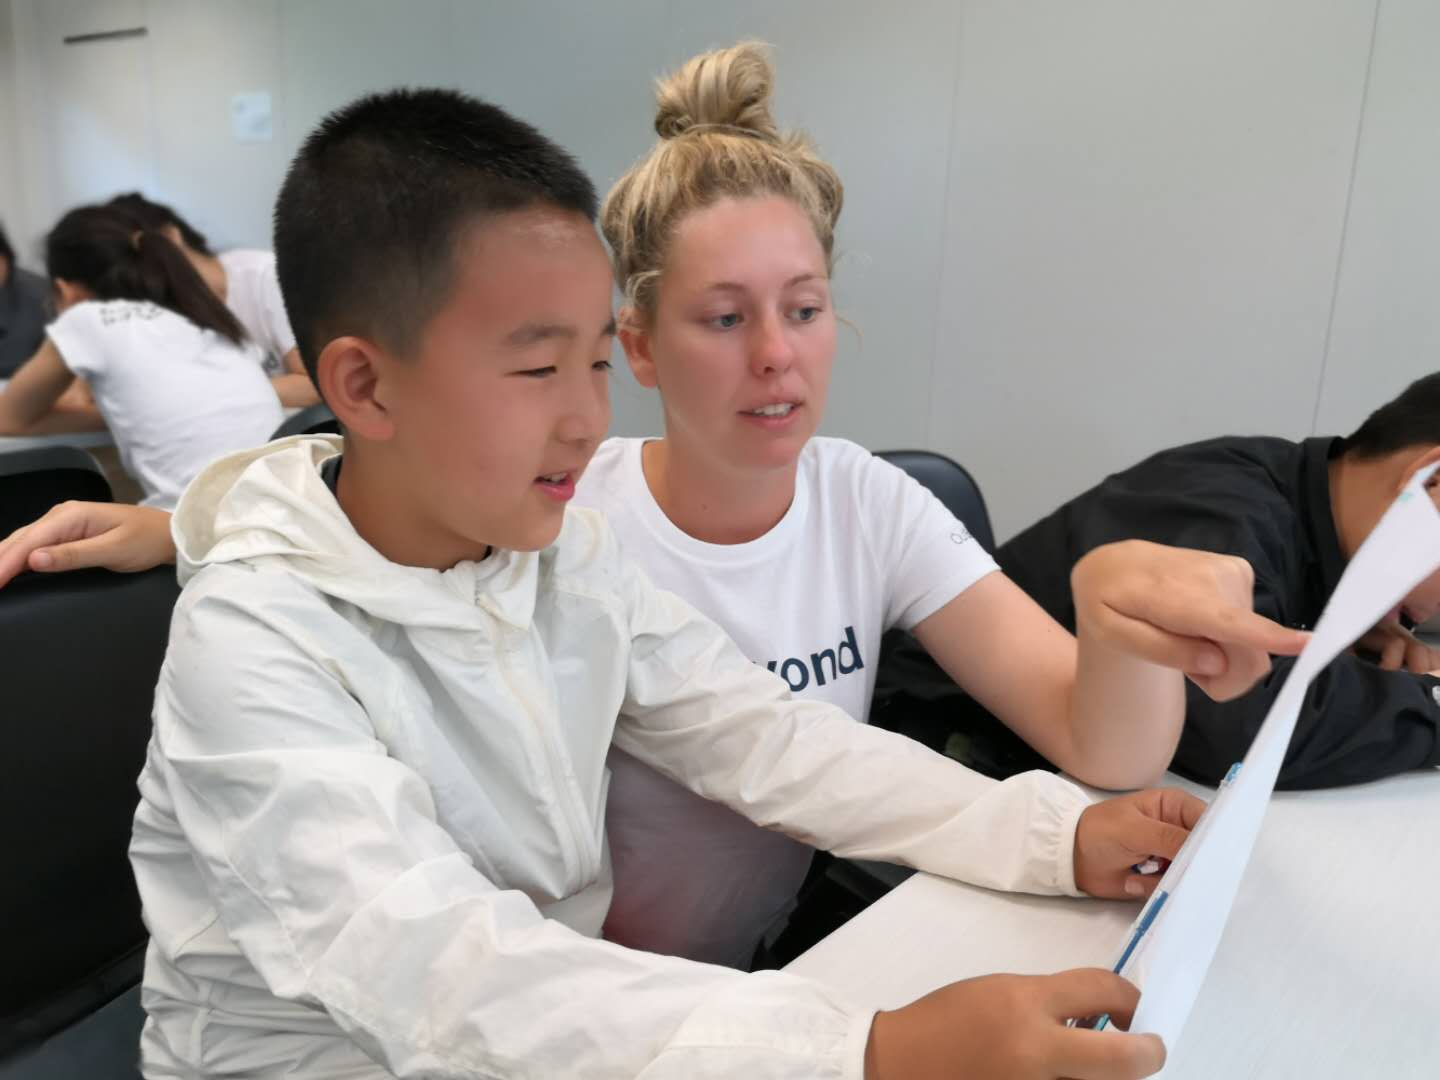 OutBeyond Study Tours | Teacher from OutBeyond giving an English Lesson to Foreign student from China